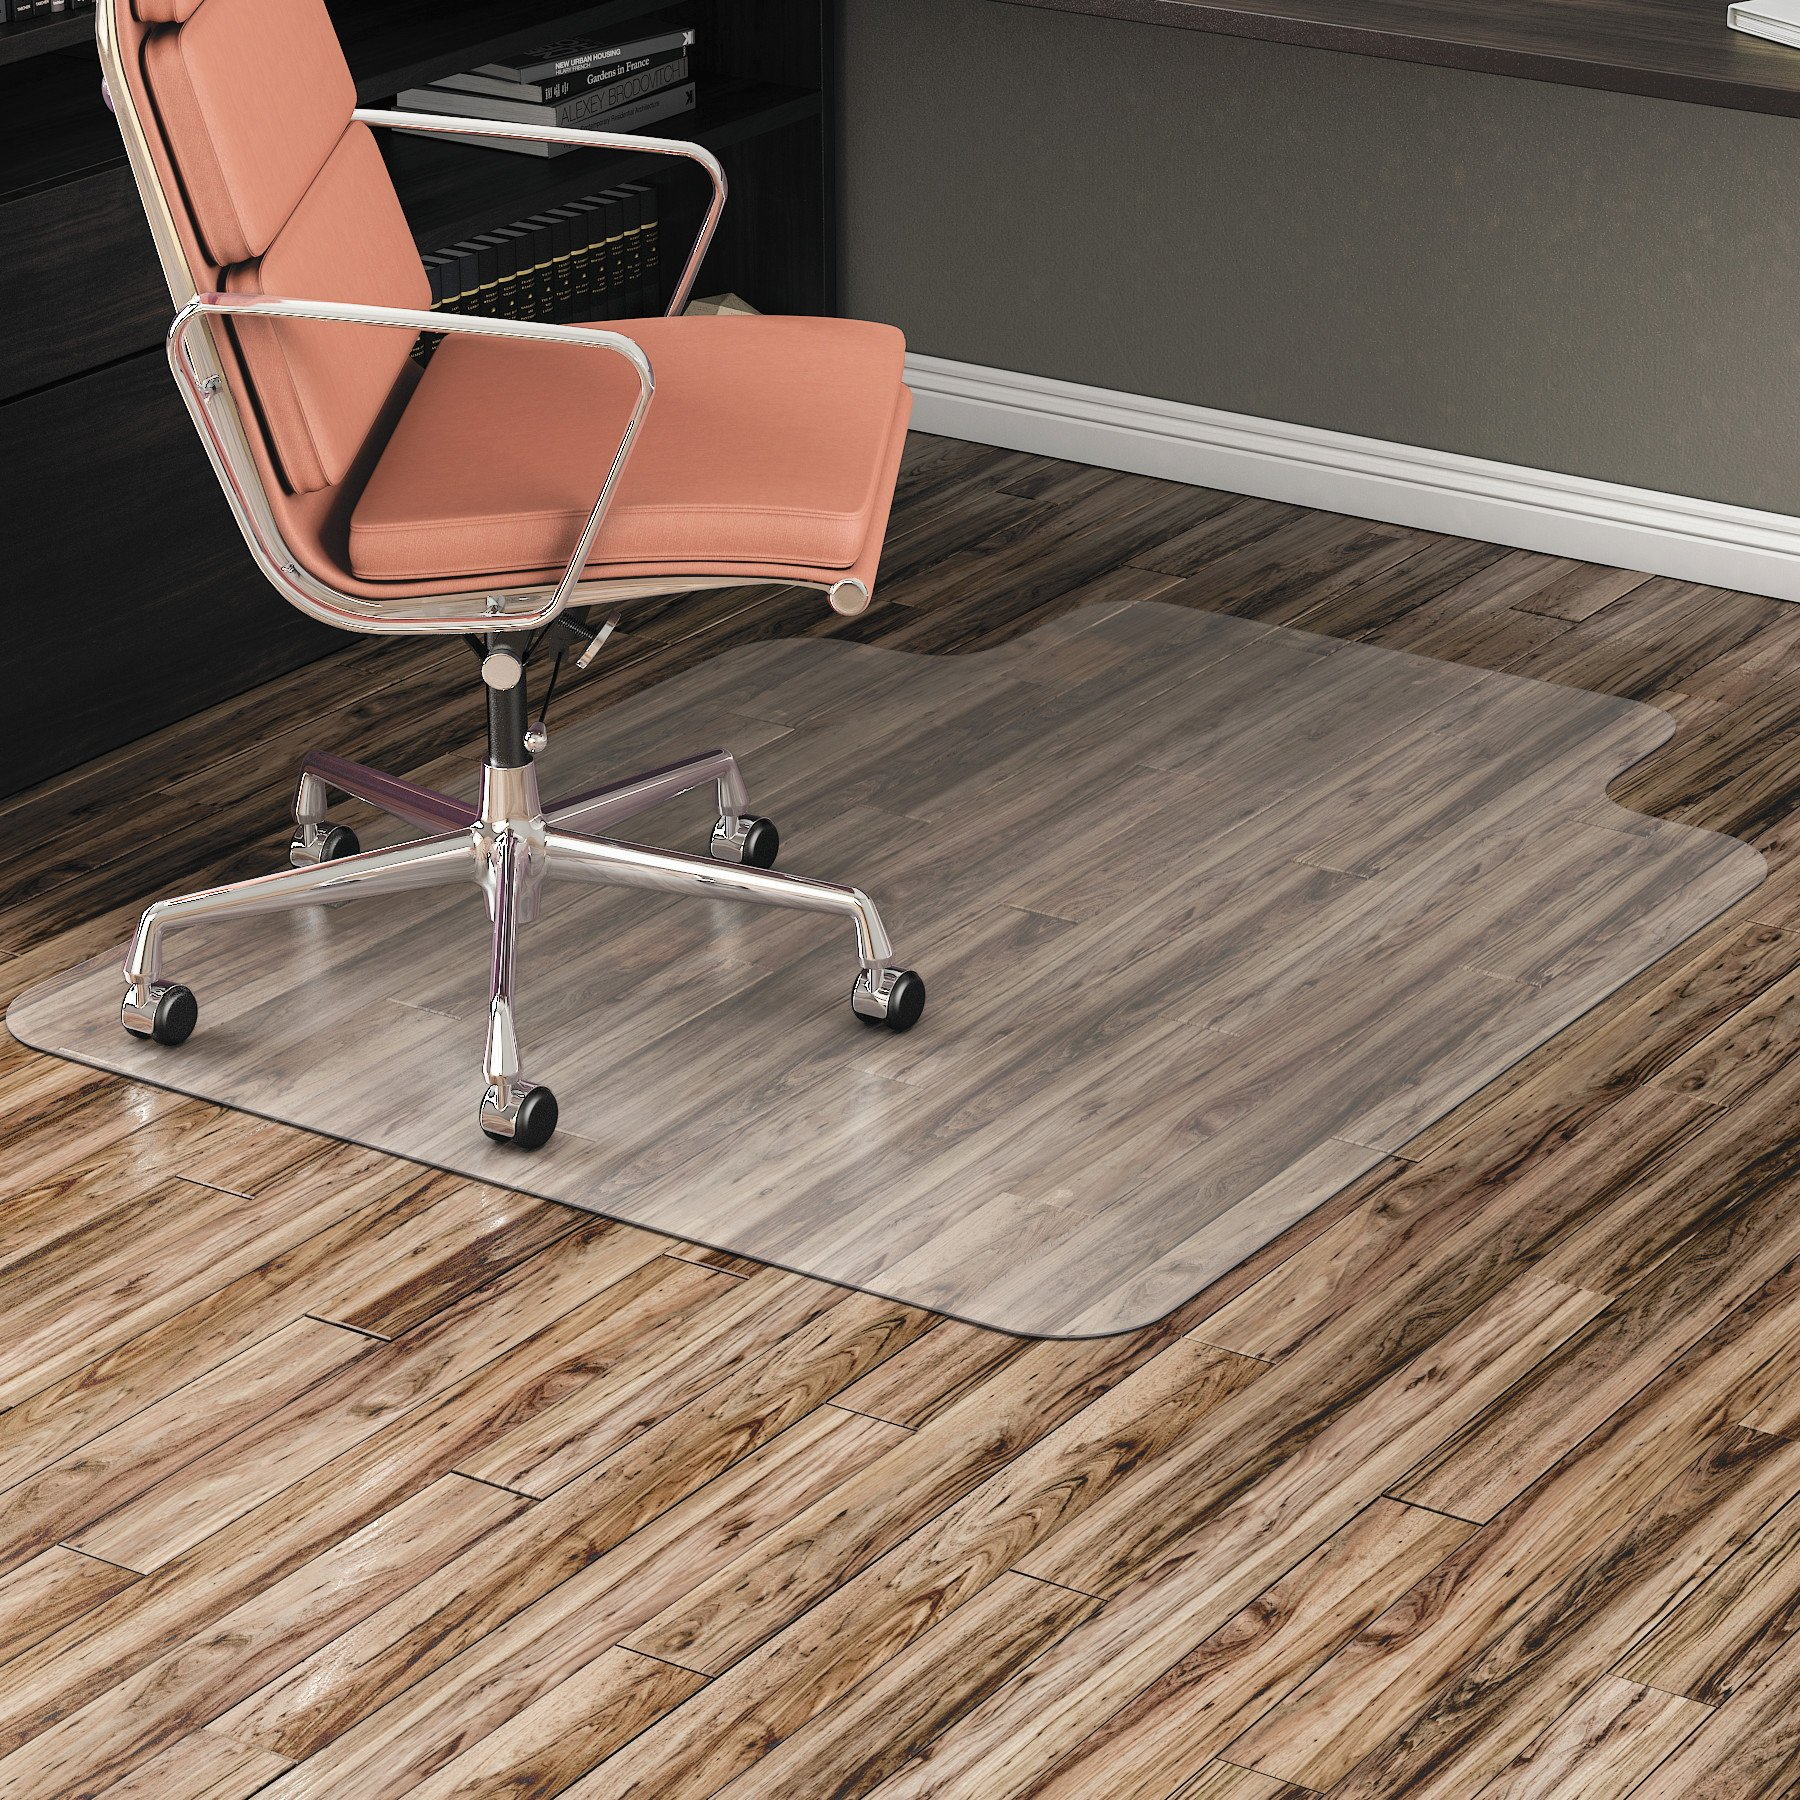 Alera ALEMAT3648HFL Non-Studded Chair Mat for Hard Floor, 36'' x 48'', with Lip, Clear